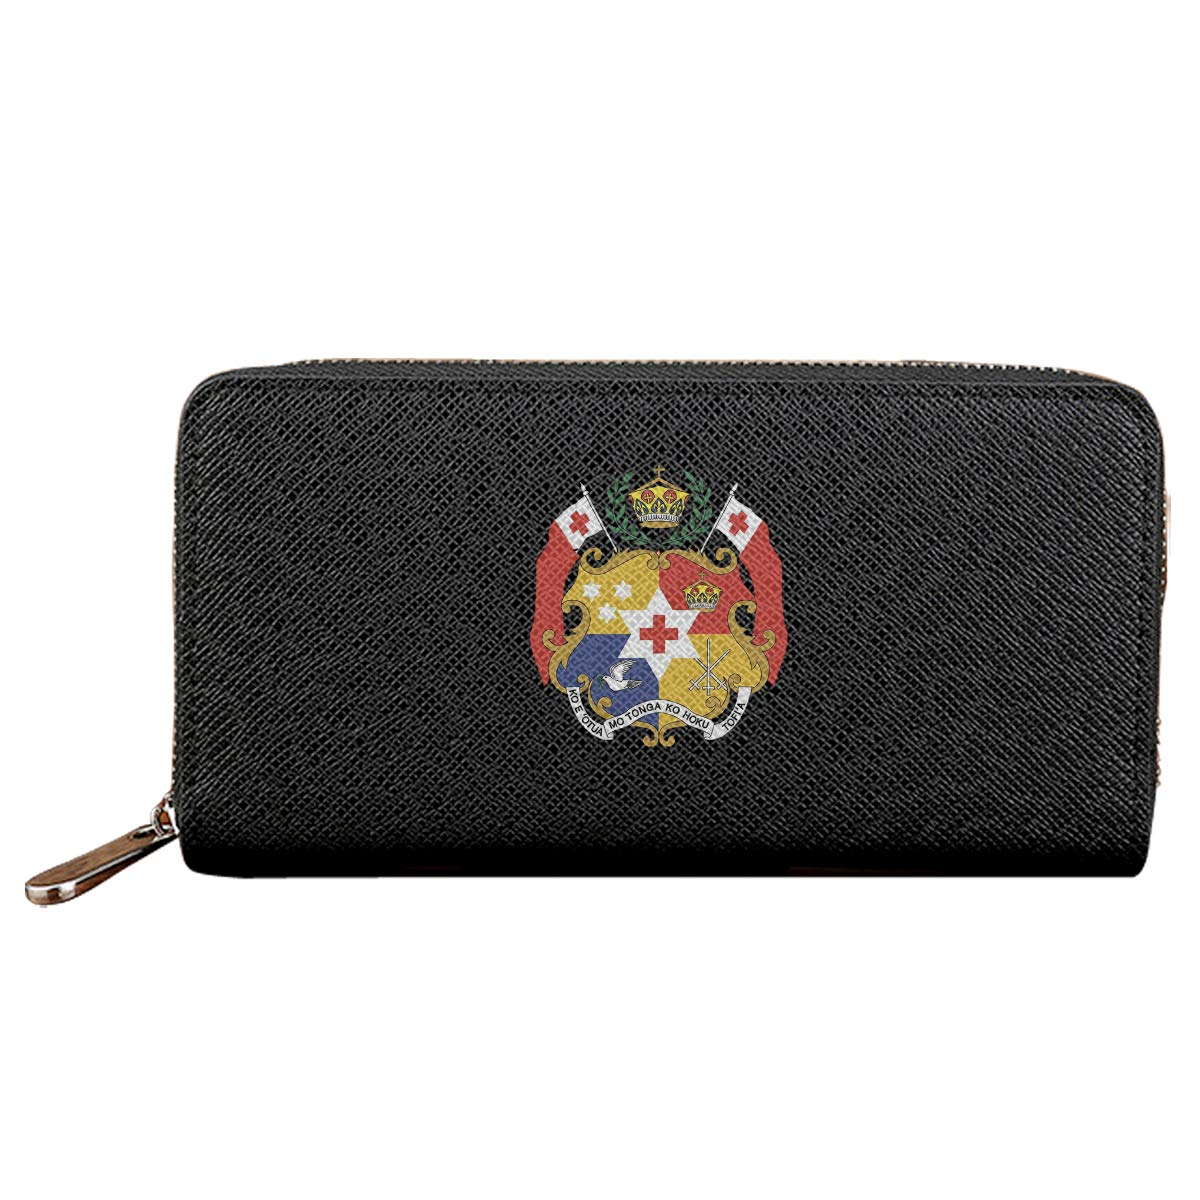 Tonga National Emblem Credit Card With Zipper Wallet Business Casual Hand Wallet